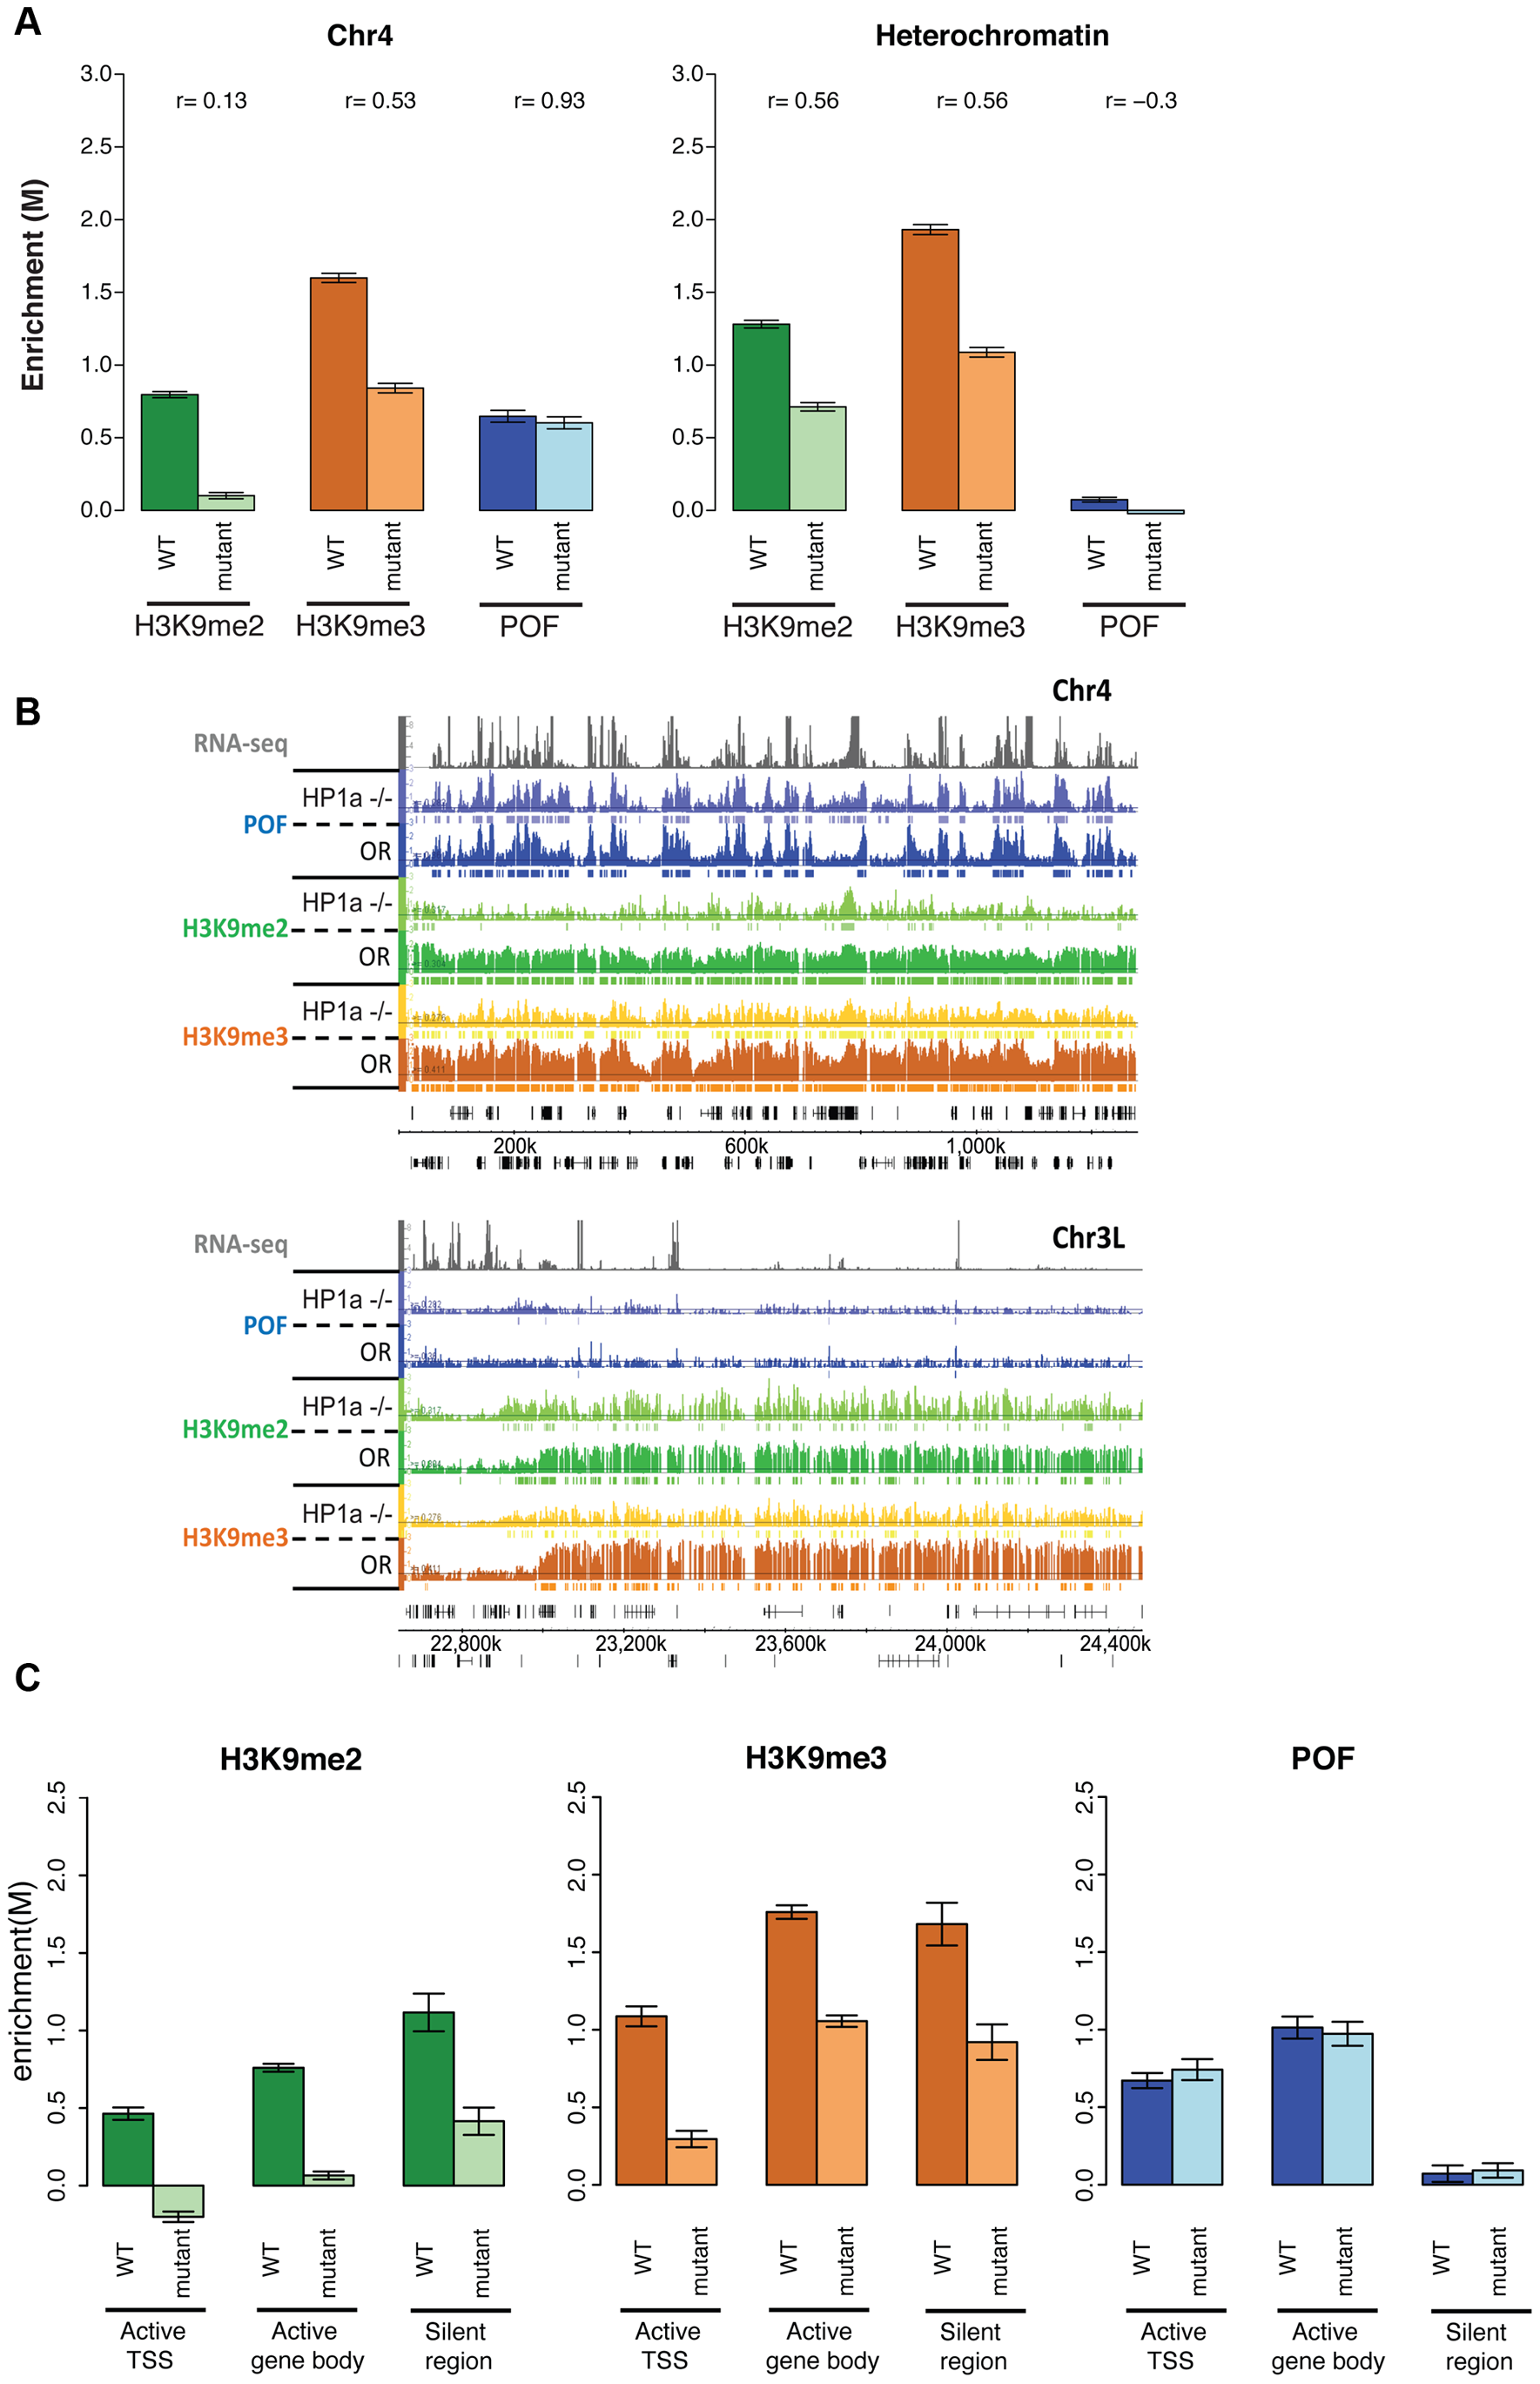 Lack of HP1a does not lead to a loss of POF from chromosome 4.